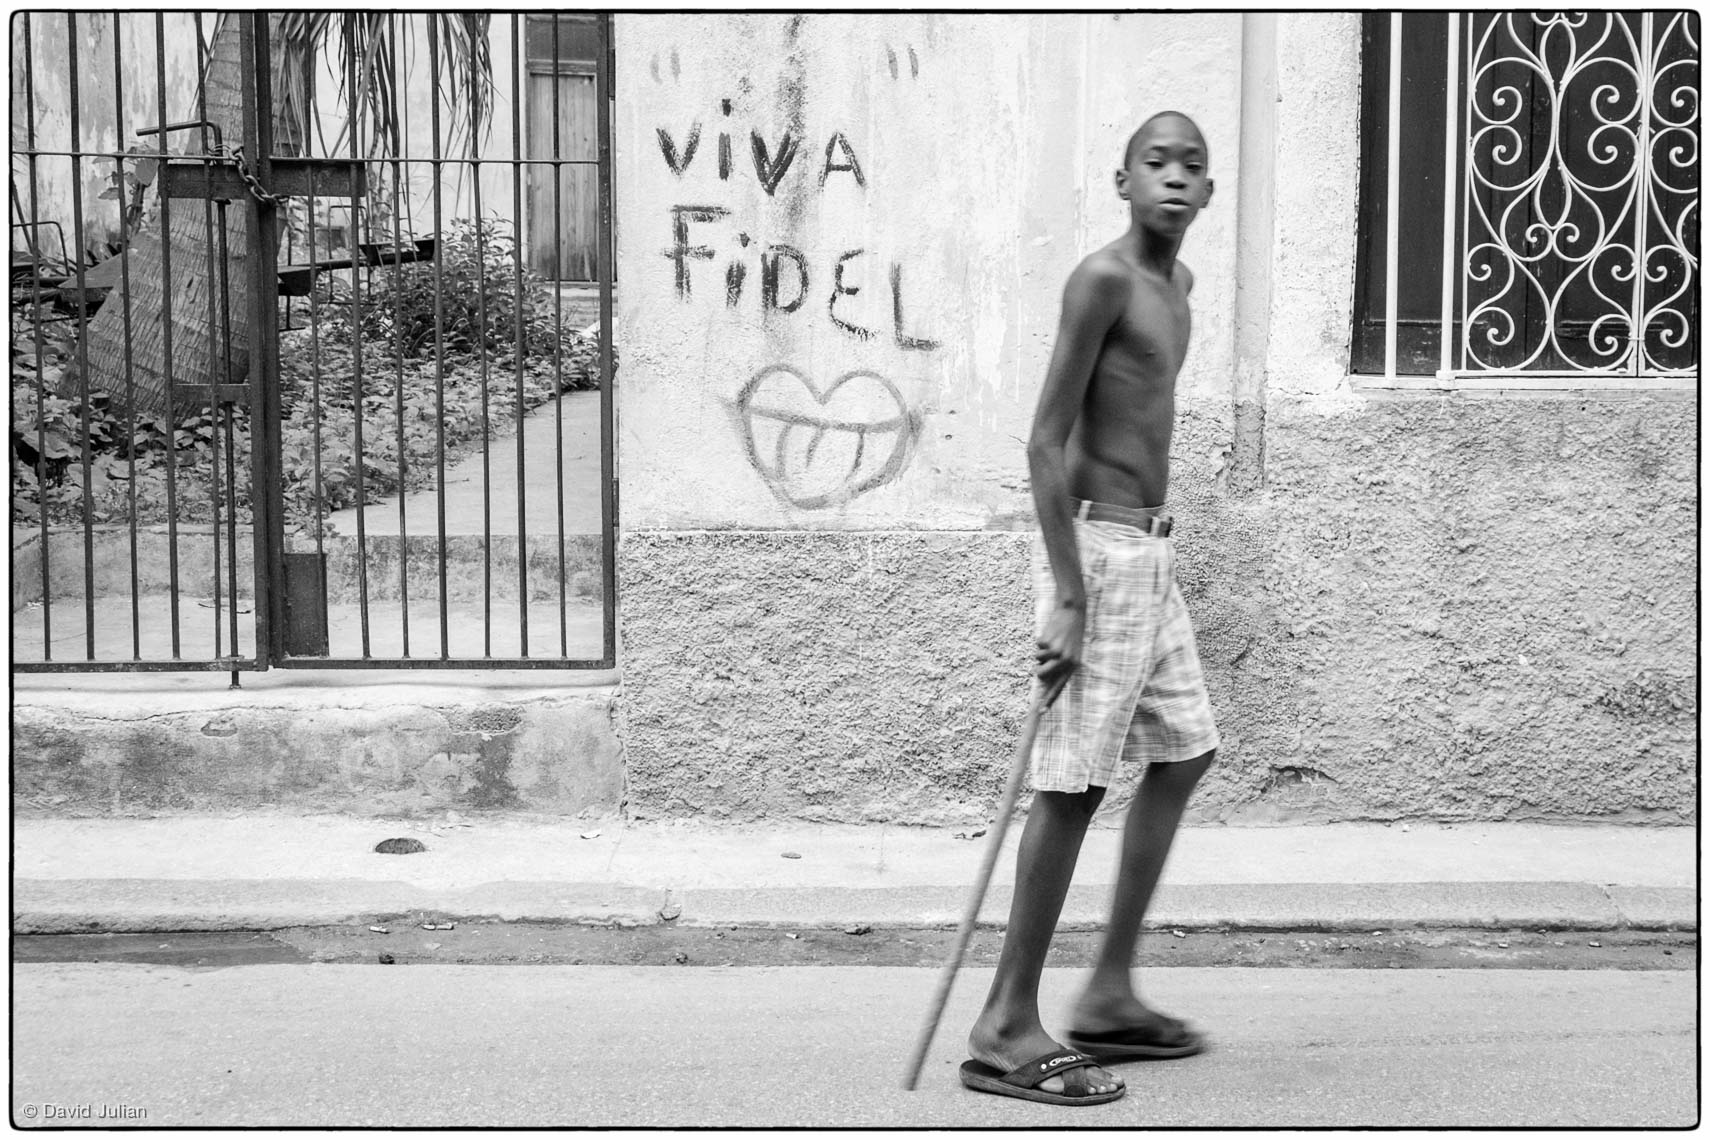 25_Cuba_Havana-injured-boy-5754